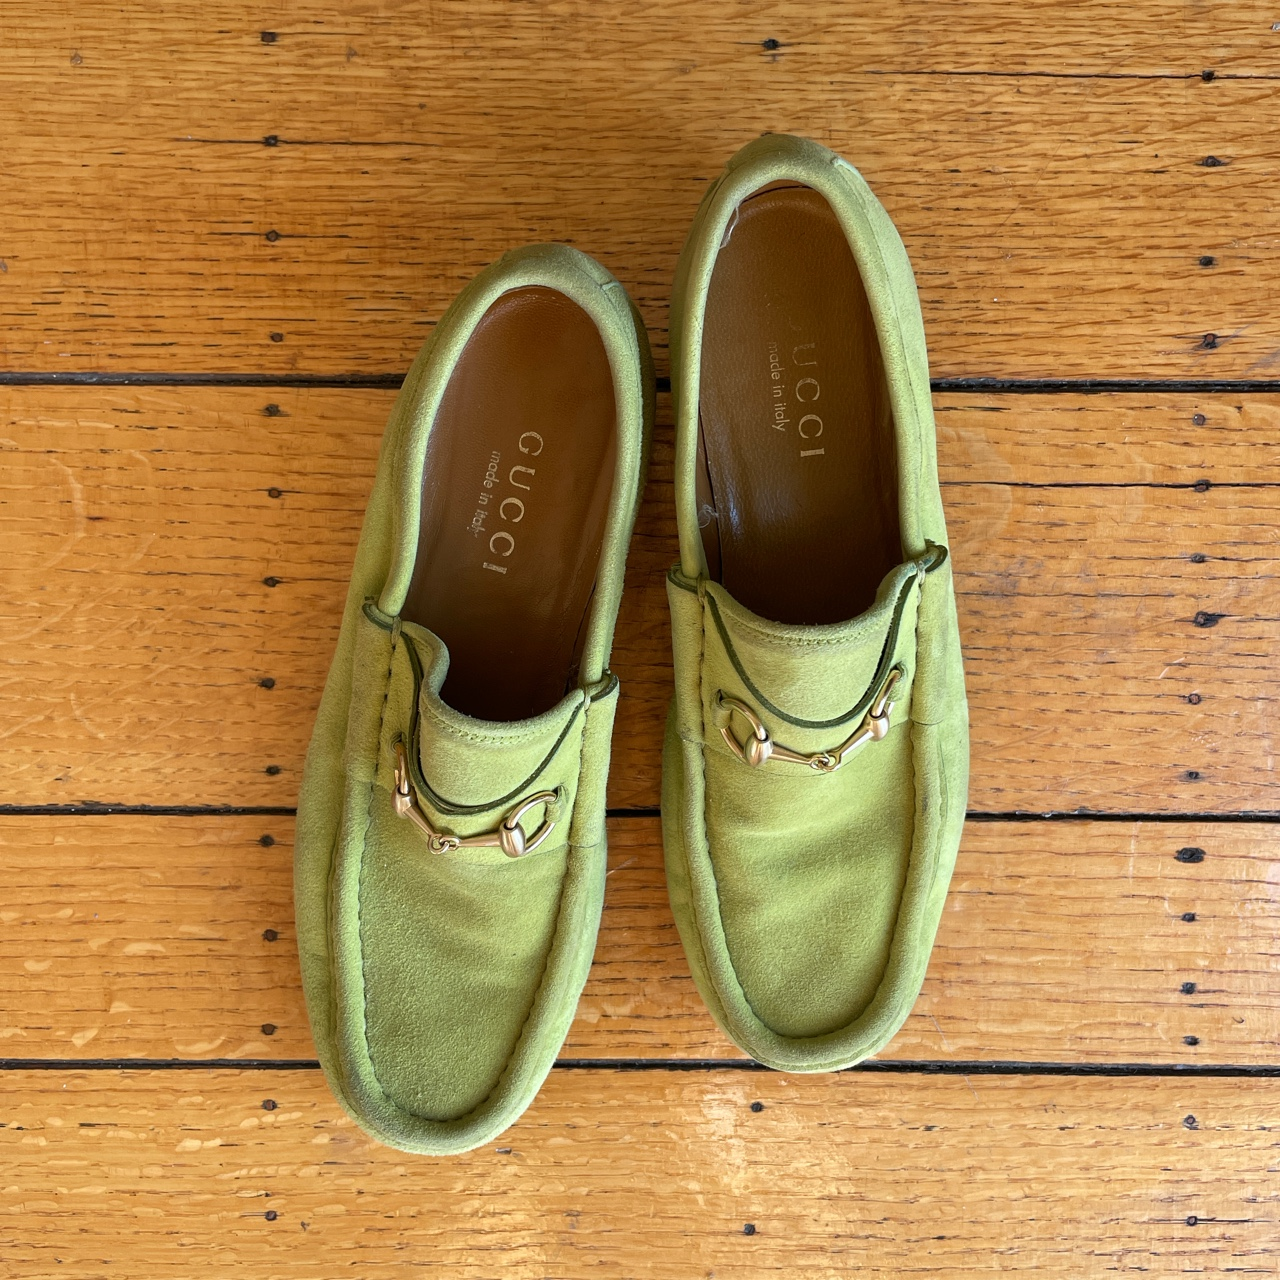 Product Image 1 - Gucci suede green loafers. Could